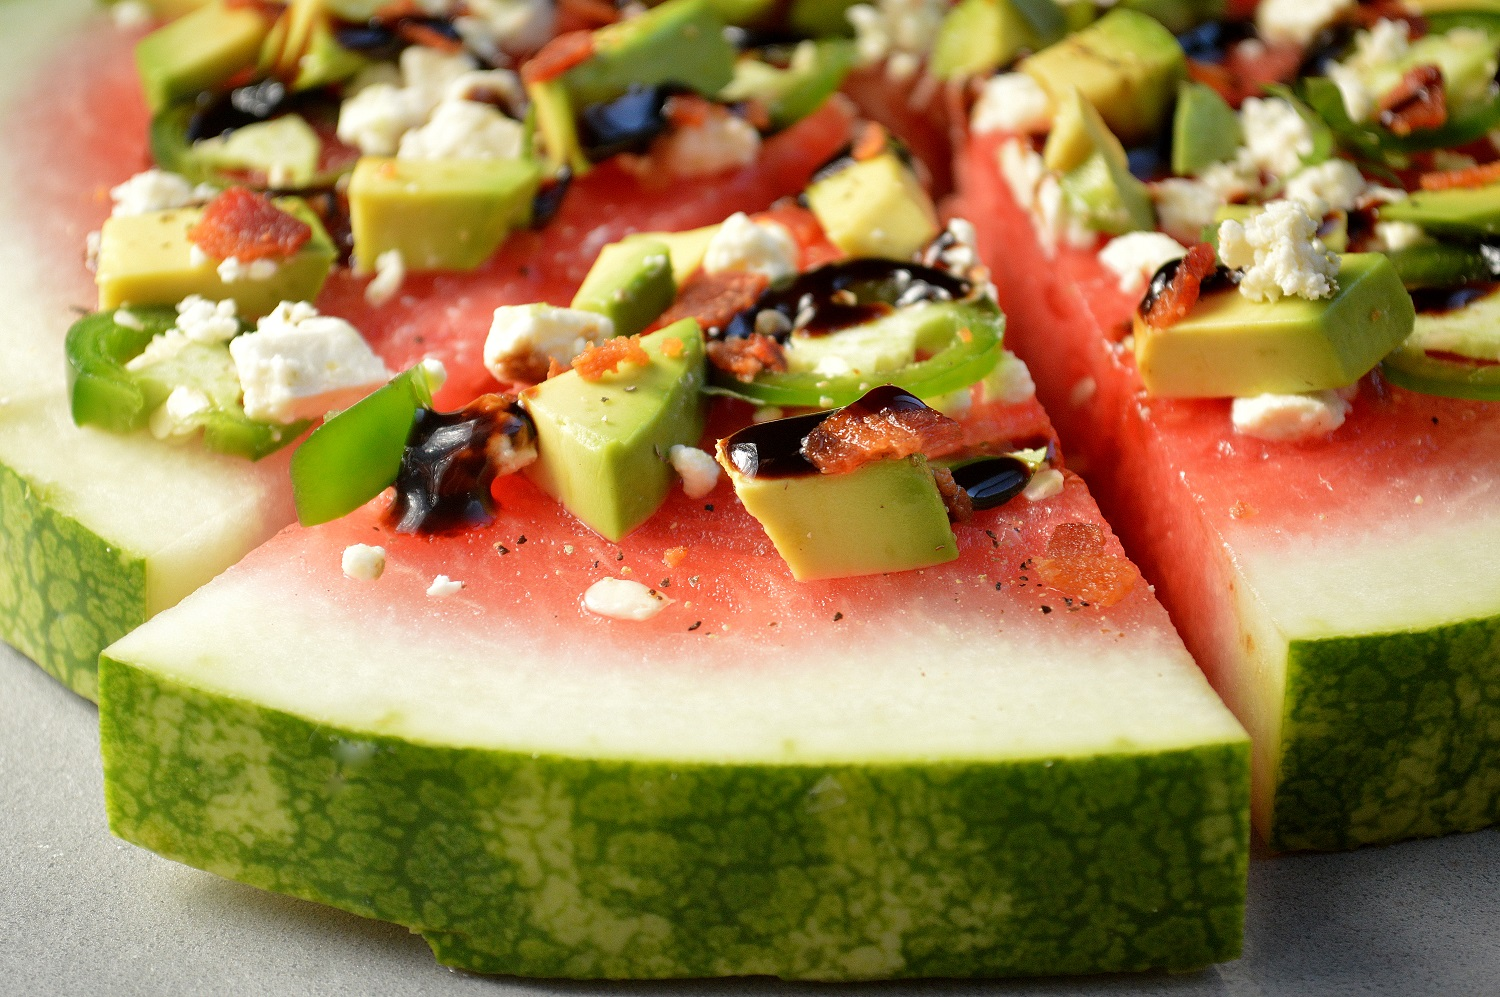 Watermelon and Avocados